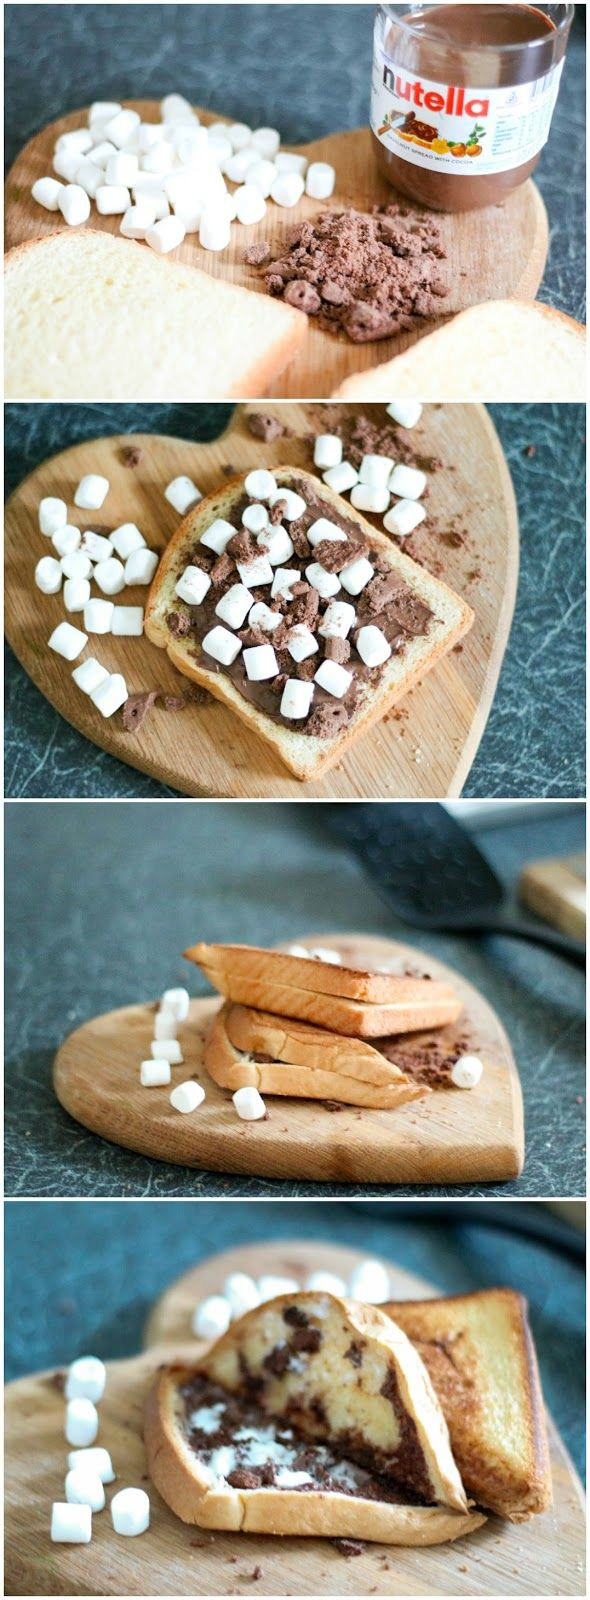 Toasted S'more: Break the Bourbon biscuit into small pieces. Spread the Nutella on the brioche and spread the biscuit and marshmallow on the Nutella brioche.   For more, check out this post on:  5 Simple Vegetarian Recipes Using Cuisinart Sandwich Maker + GIVEAWAY